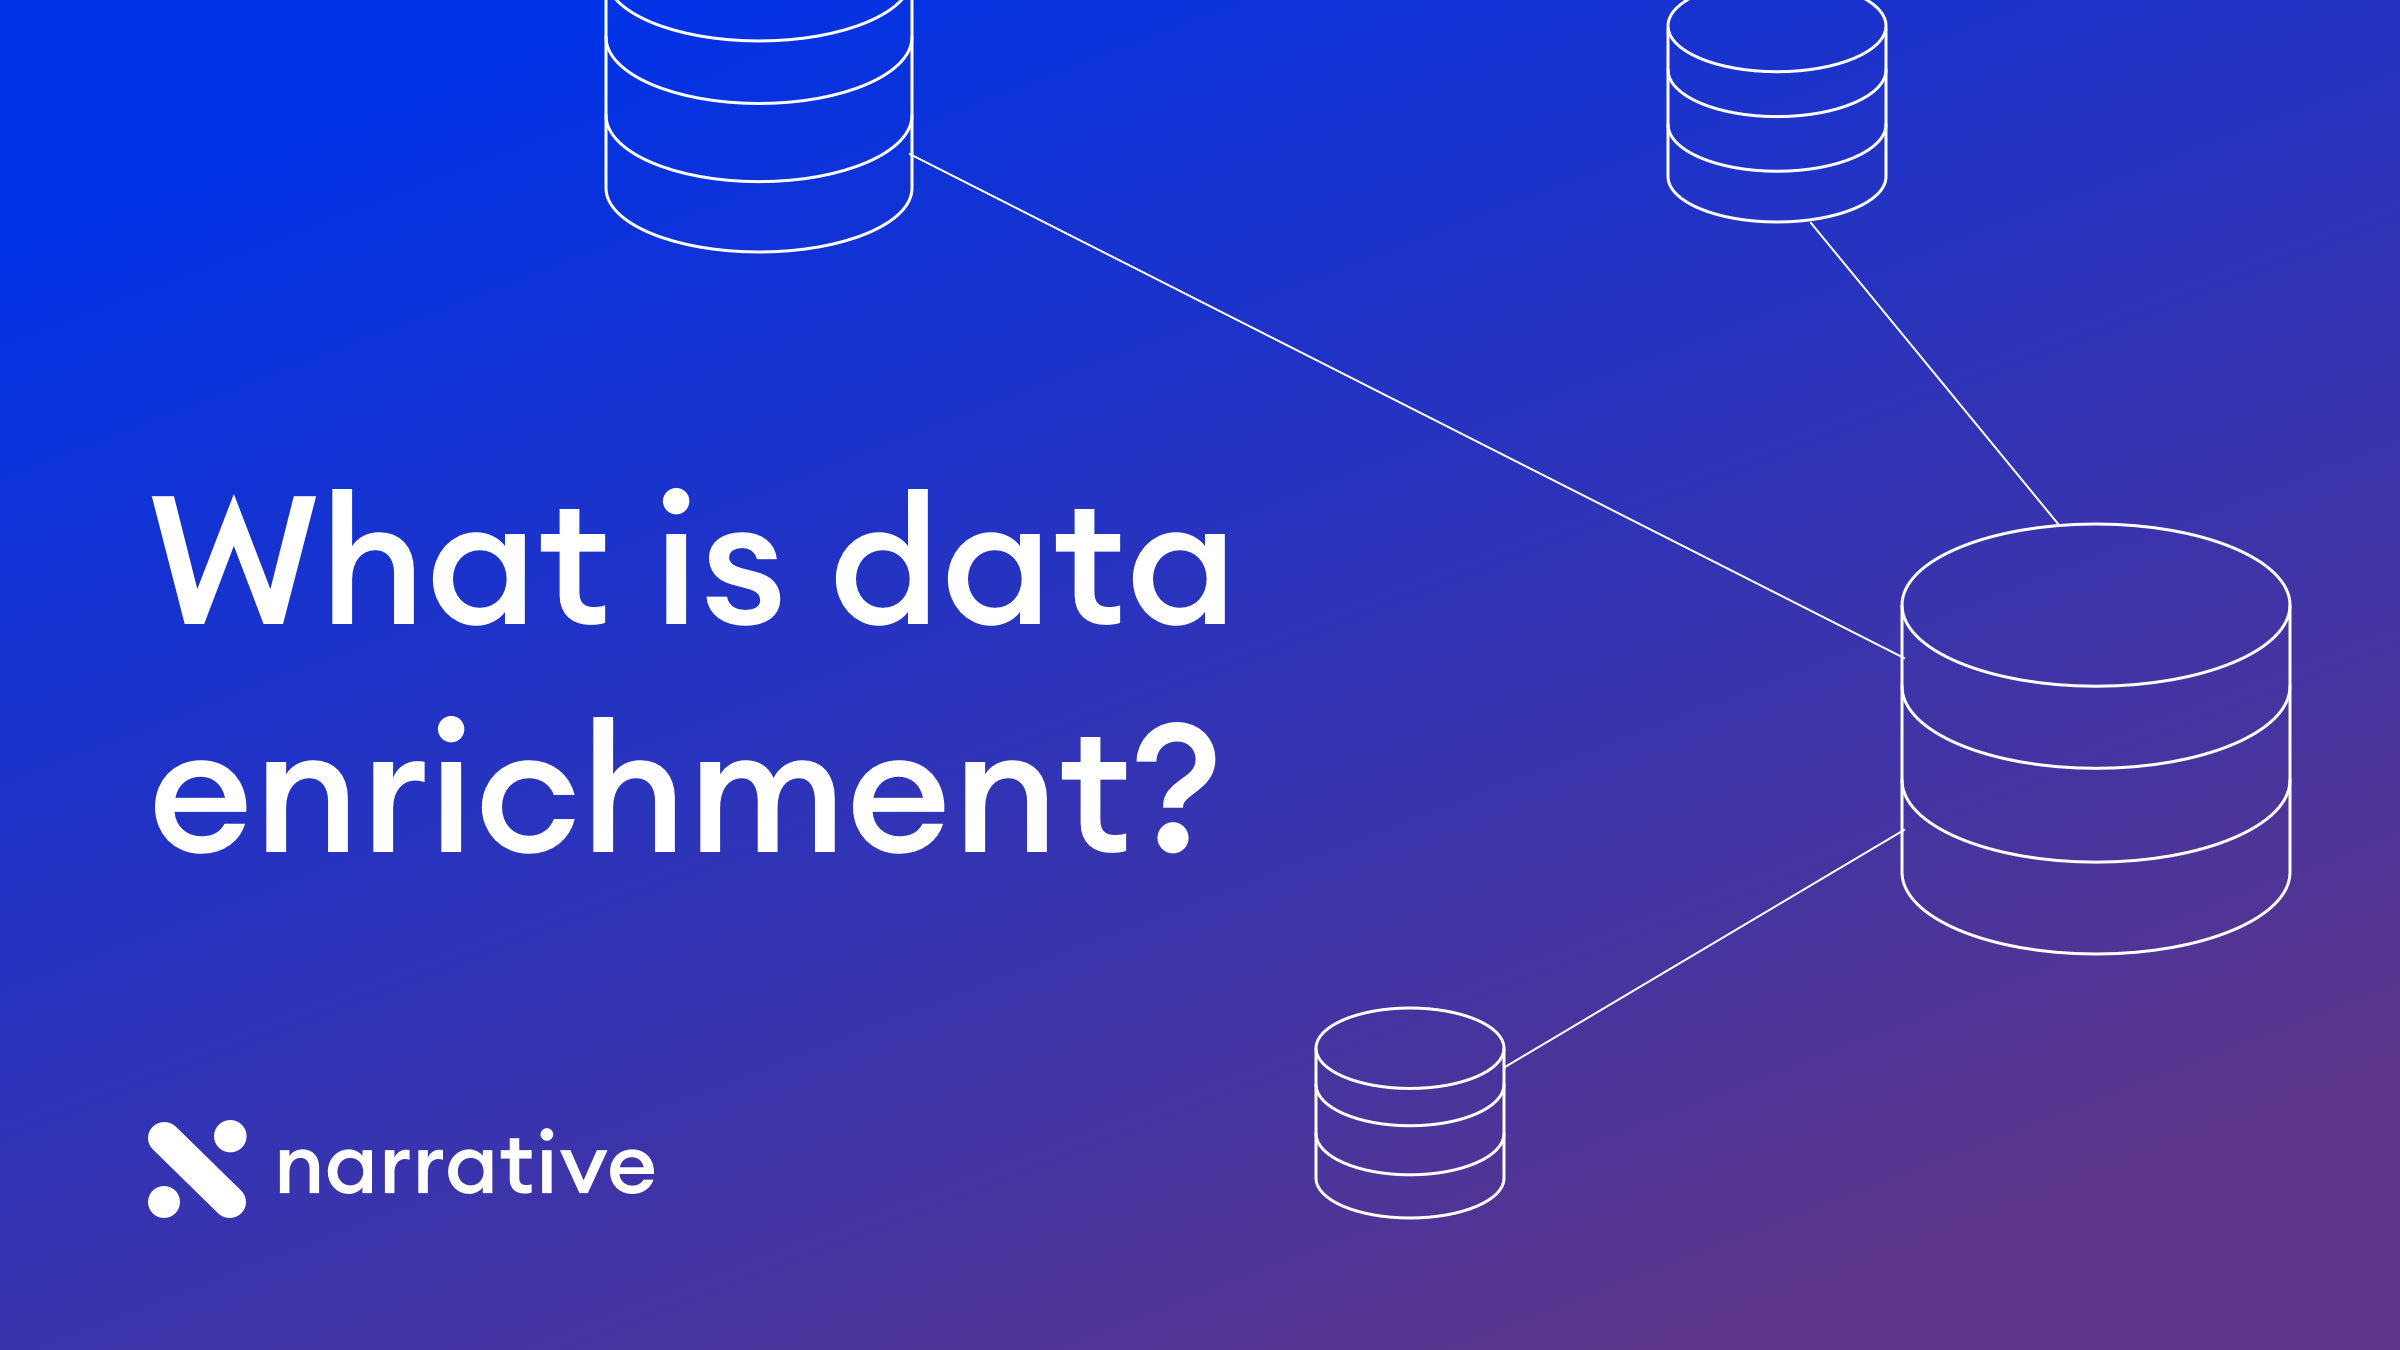 What is data enrichment?